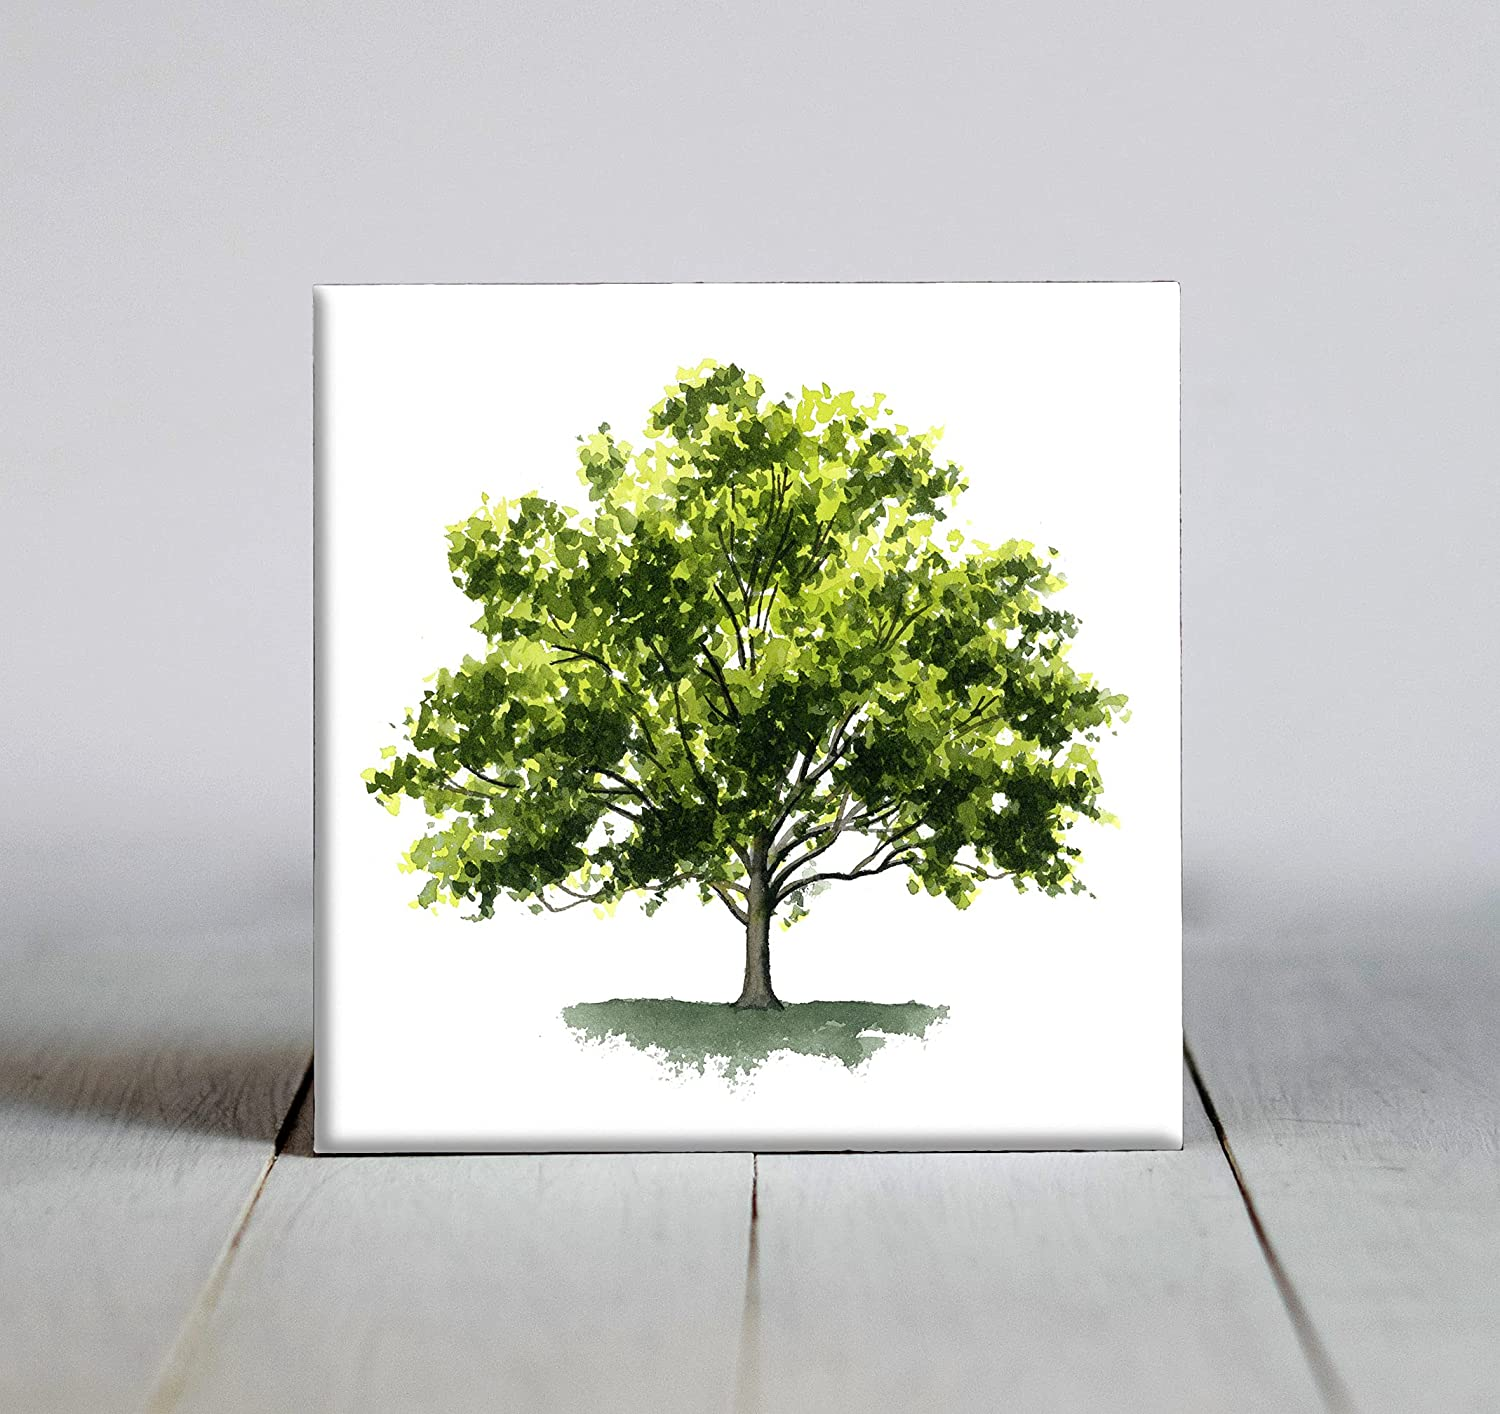 Genuine Free Shipping Sycamore Tree Watercolor Art Decorative Framed Tile El Paso Mall X 4.25